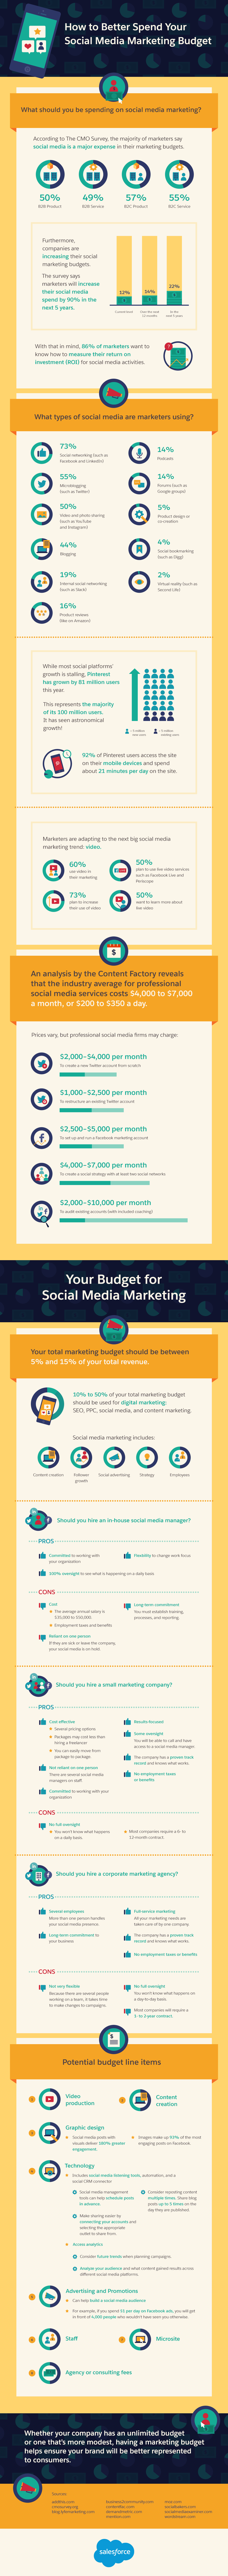 How to Better Spend Your Social Media Marketing Budget [Infographic] | Social Media Today